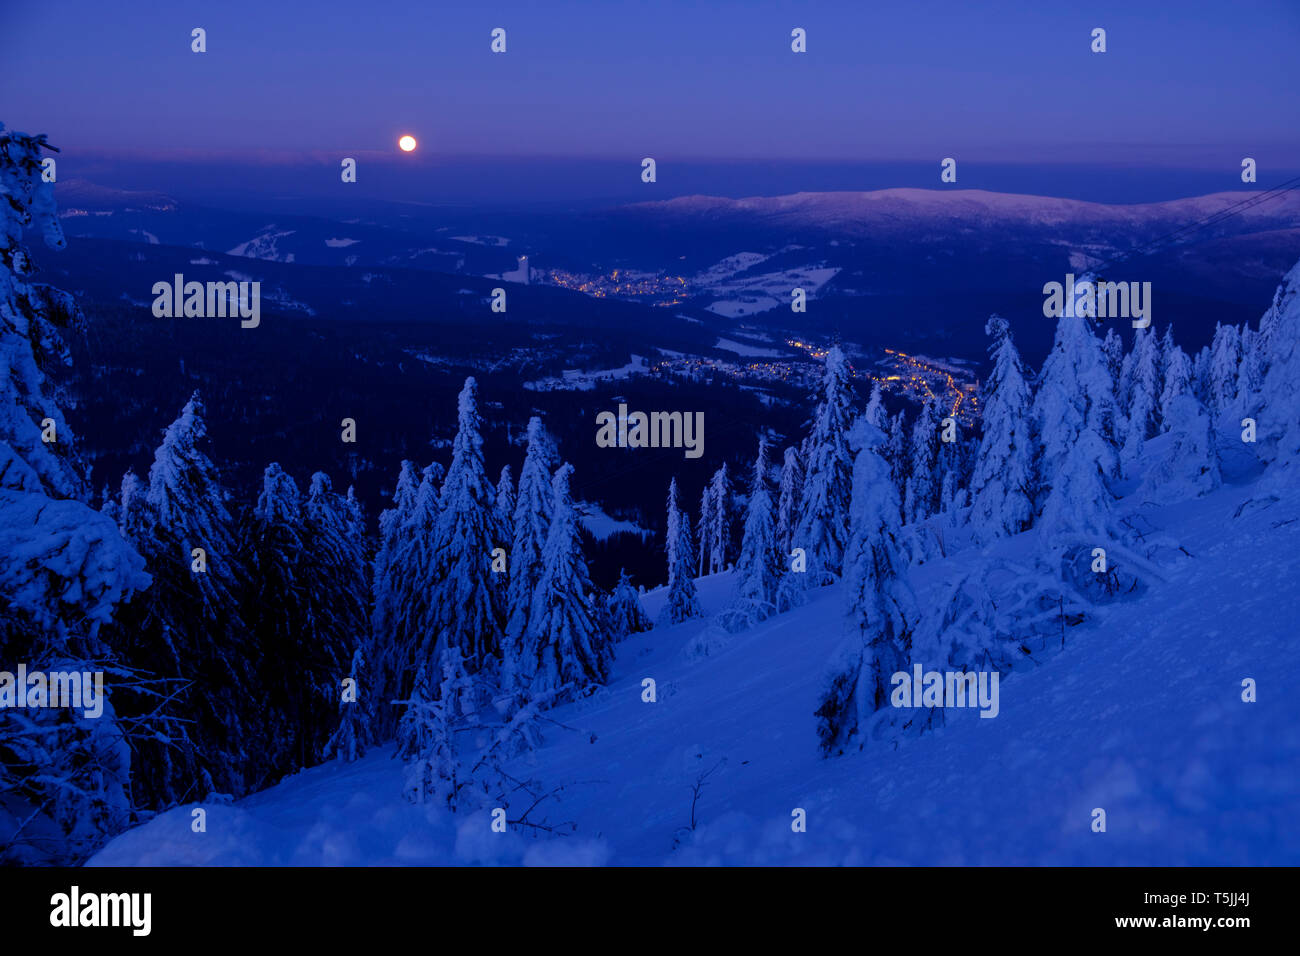 Germany, Bavaria, Bavarian Forest in winter, Great Arber, Arbermandl, snow-capped spruces at dusk with moon - Stock Image